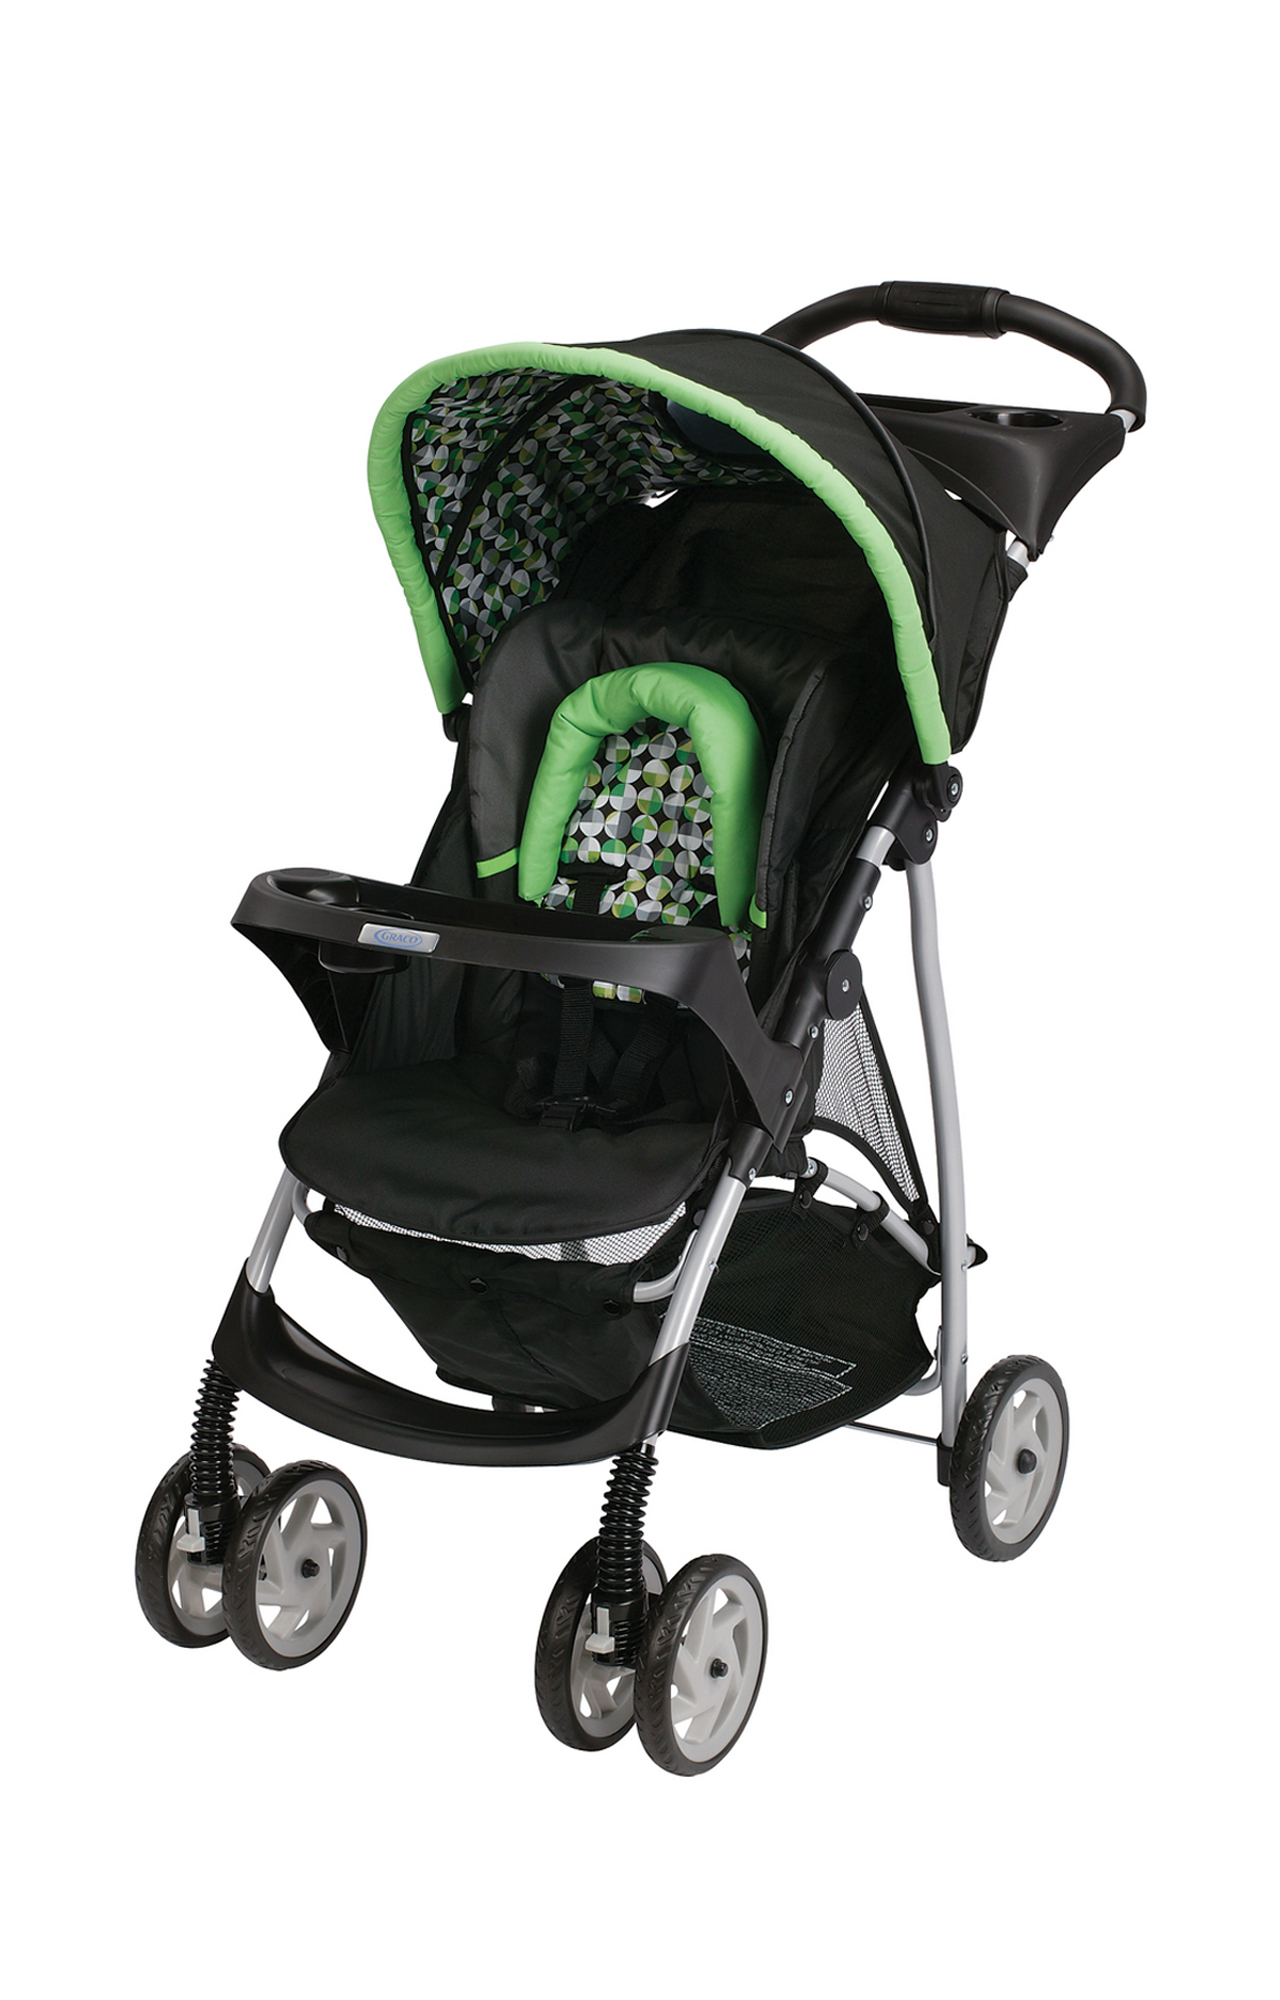 Mothercare | Graco Literider Classic Charger Baby Stroller Multicolor